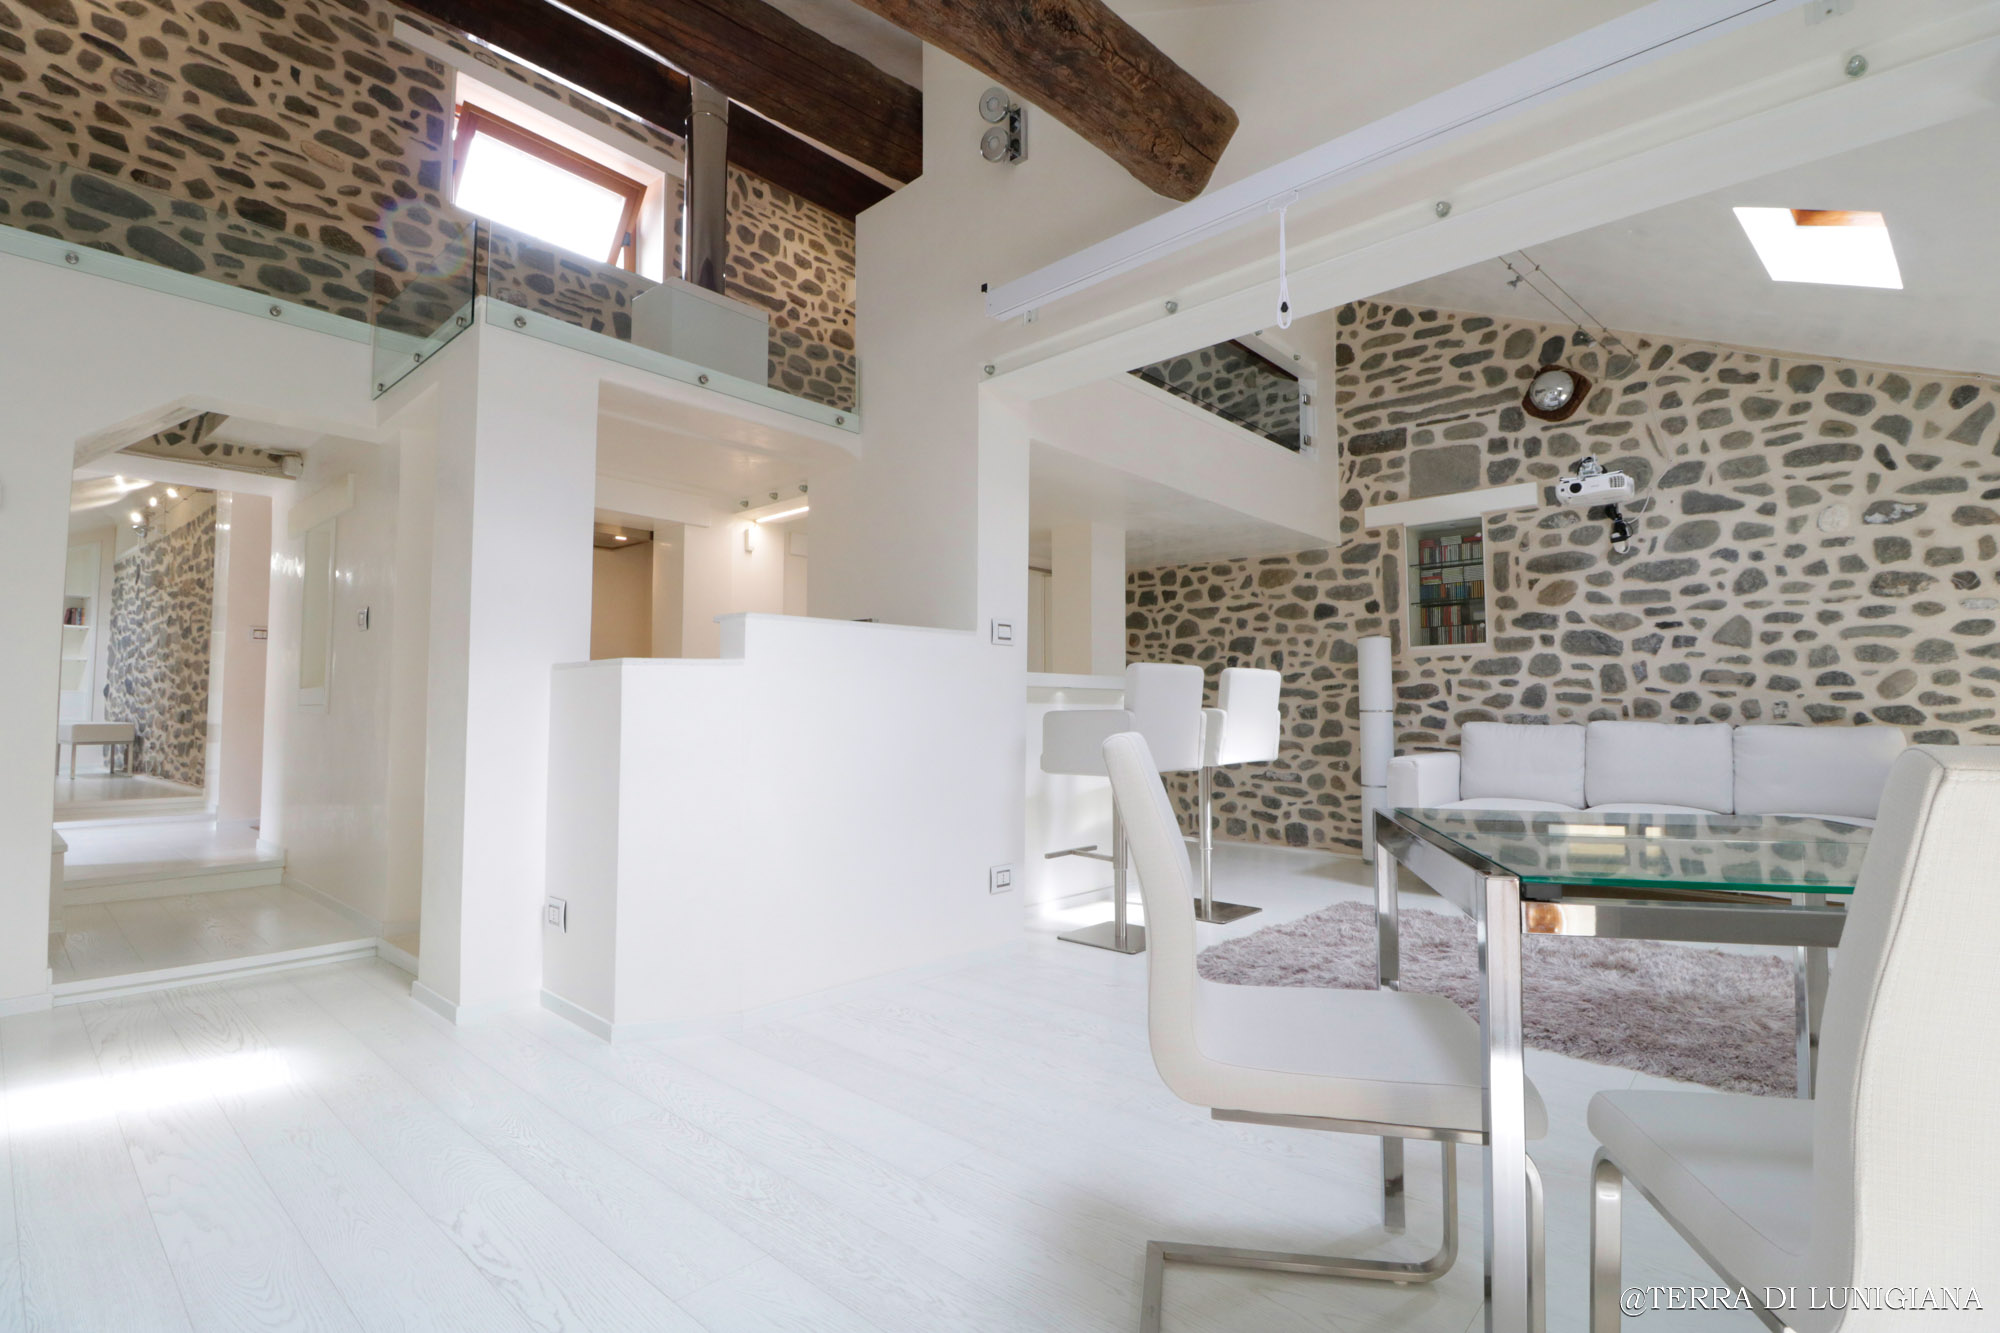 LA MORA – Amazing Renovated Loft